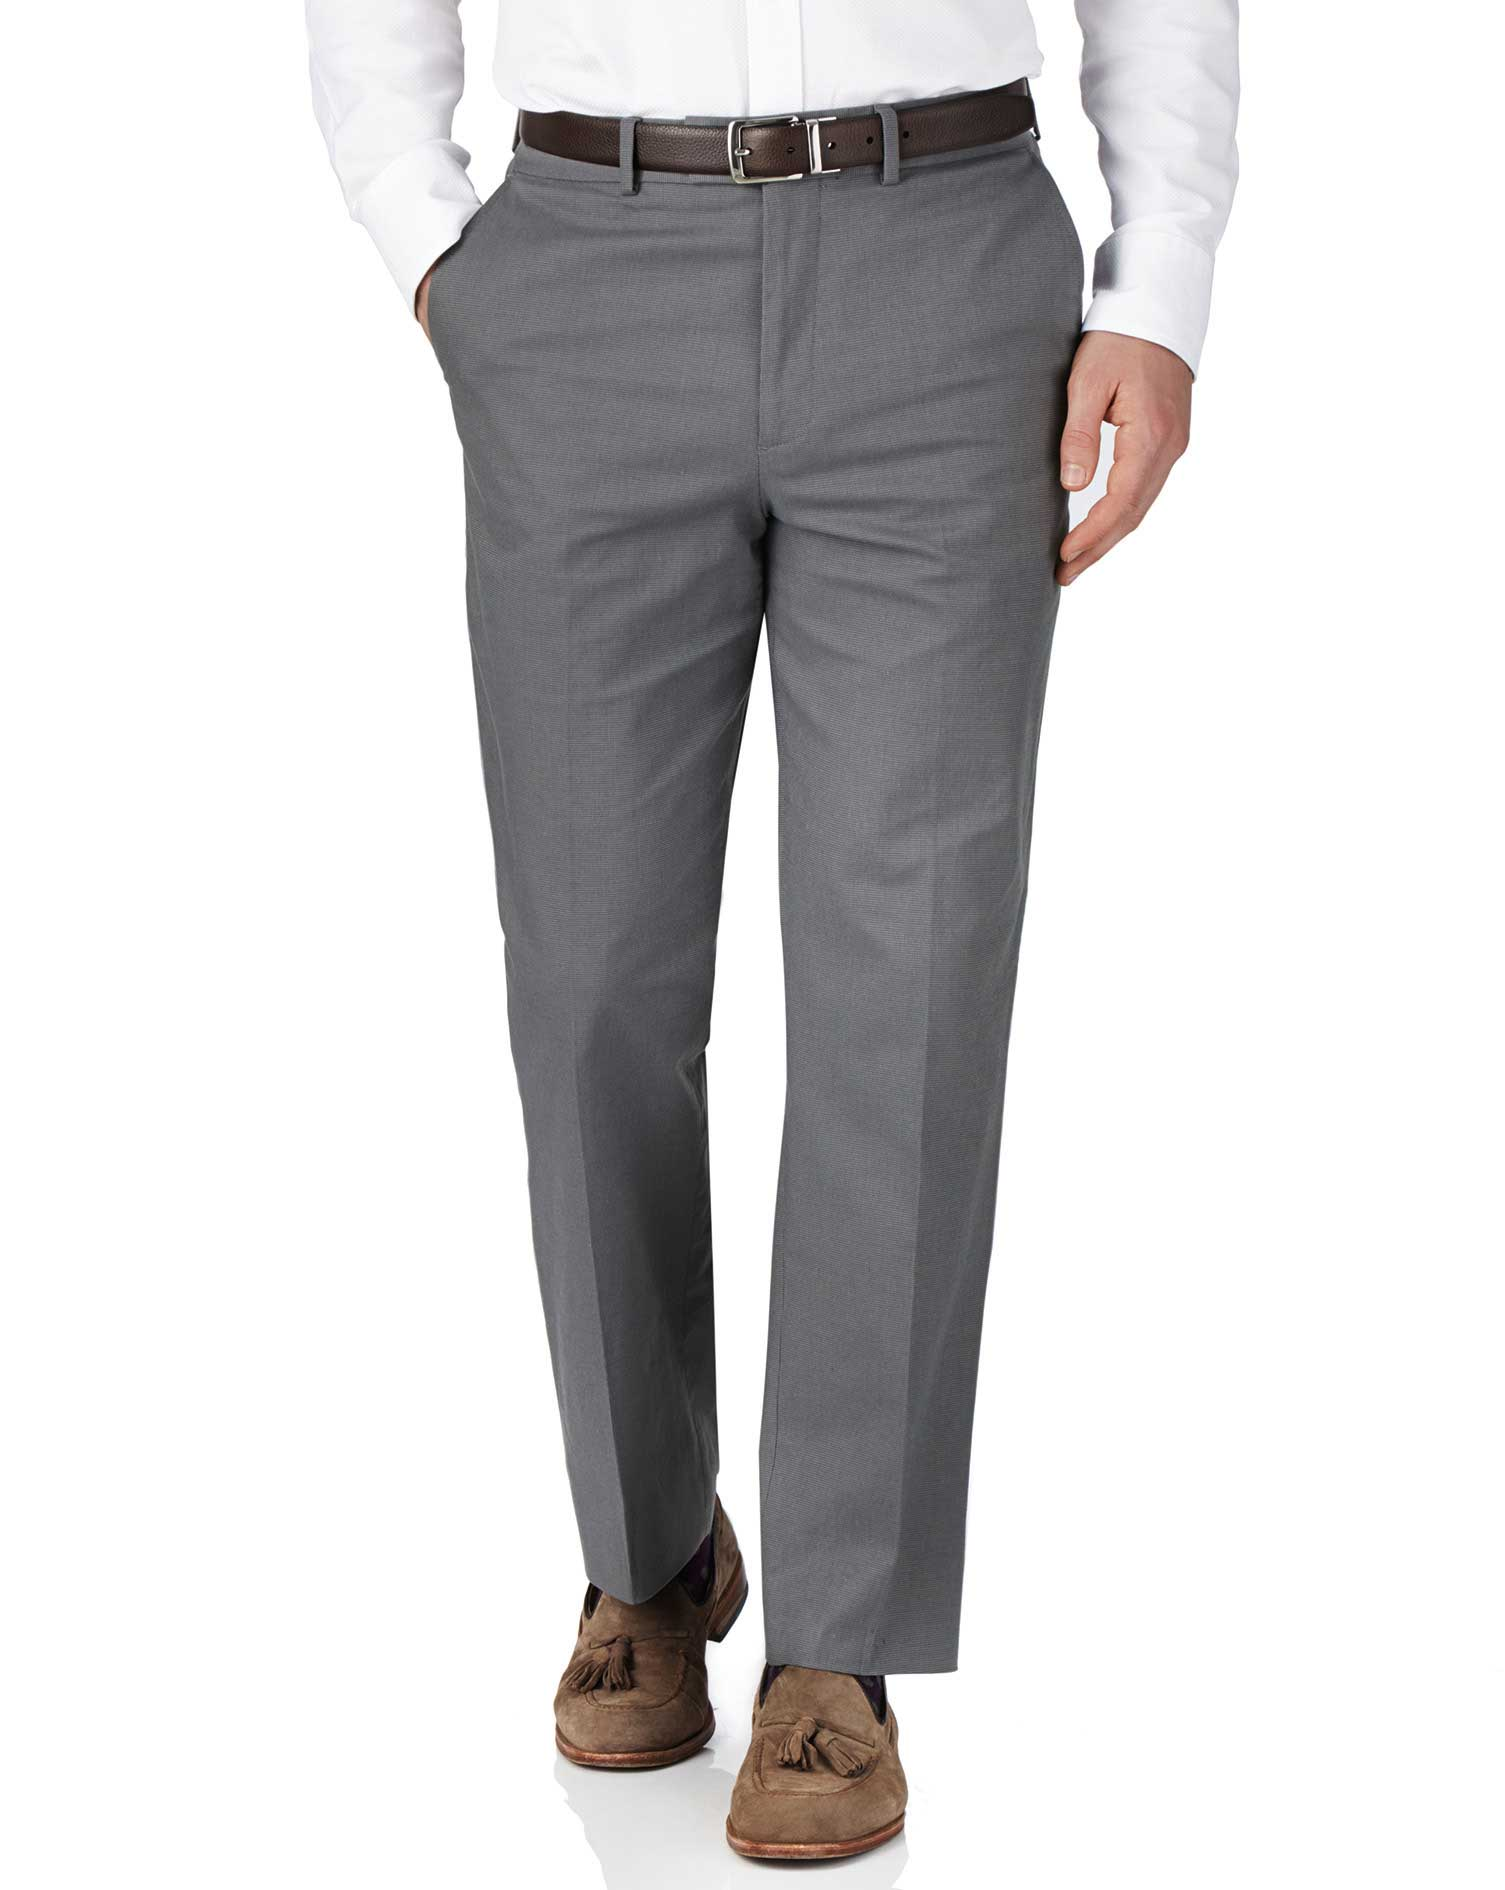 Grey Classic Fit Pin Dot Trousers Size W36 L30 by Charles Tyrwhitt